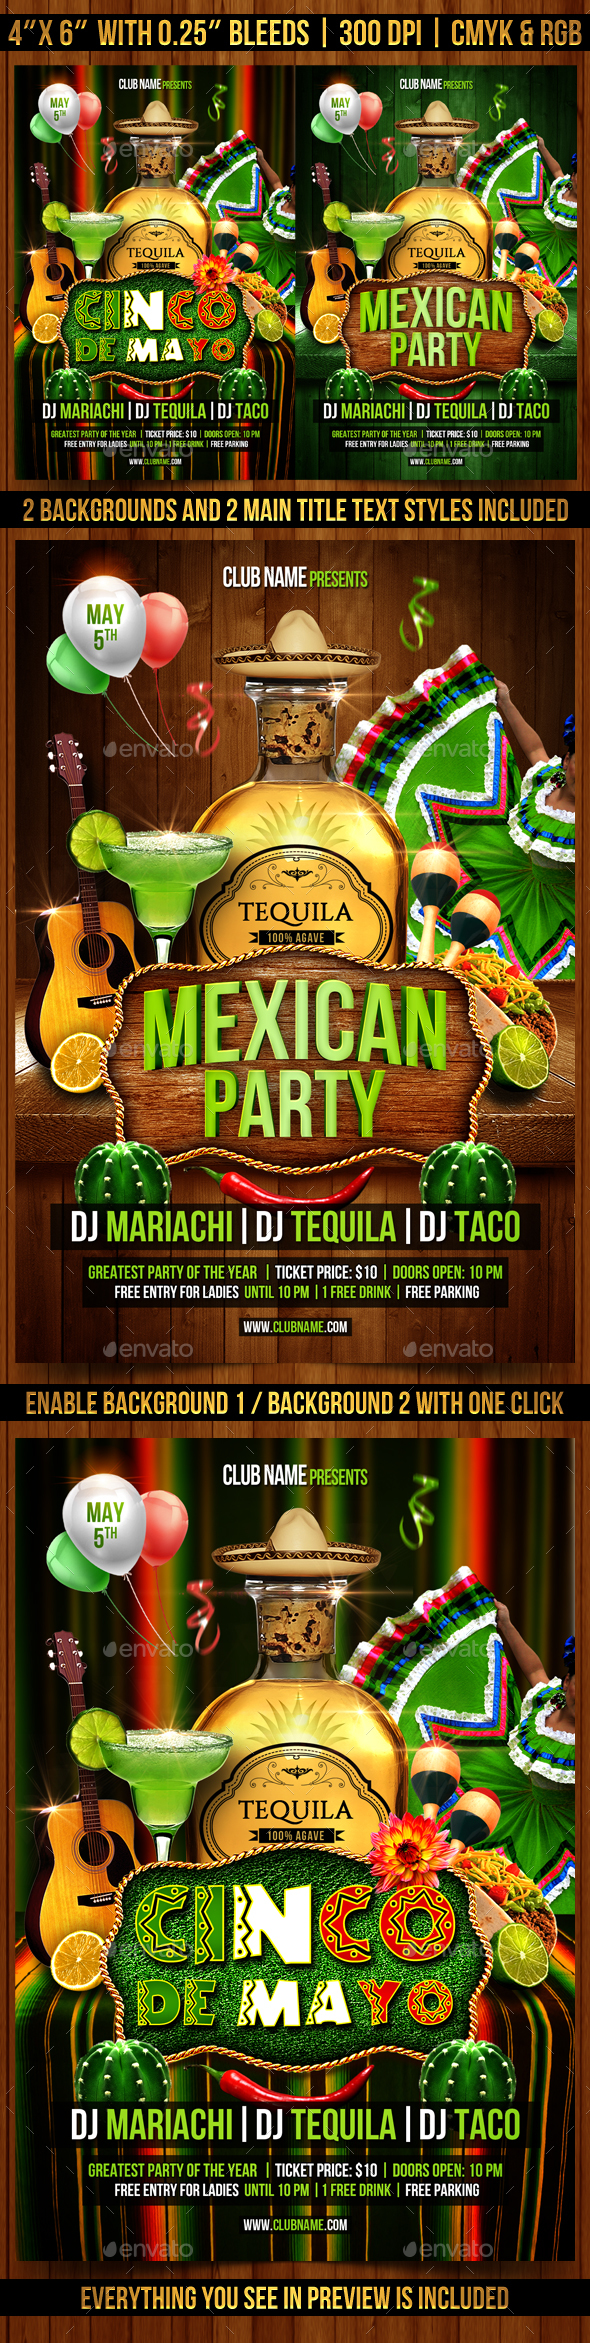 Mexican Party and Cinco de Mayo Flyer - Events Flyers